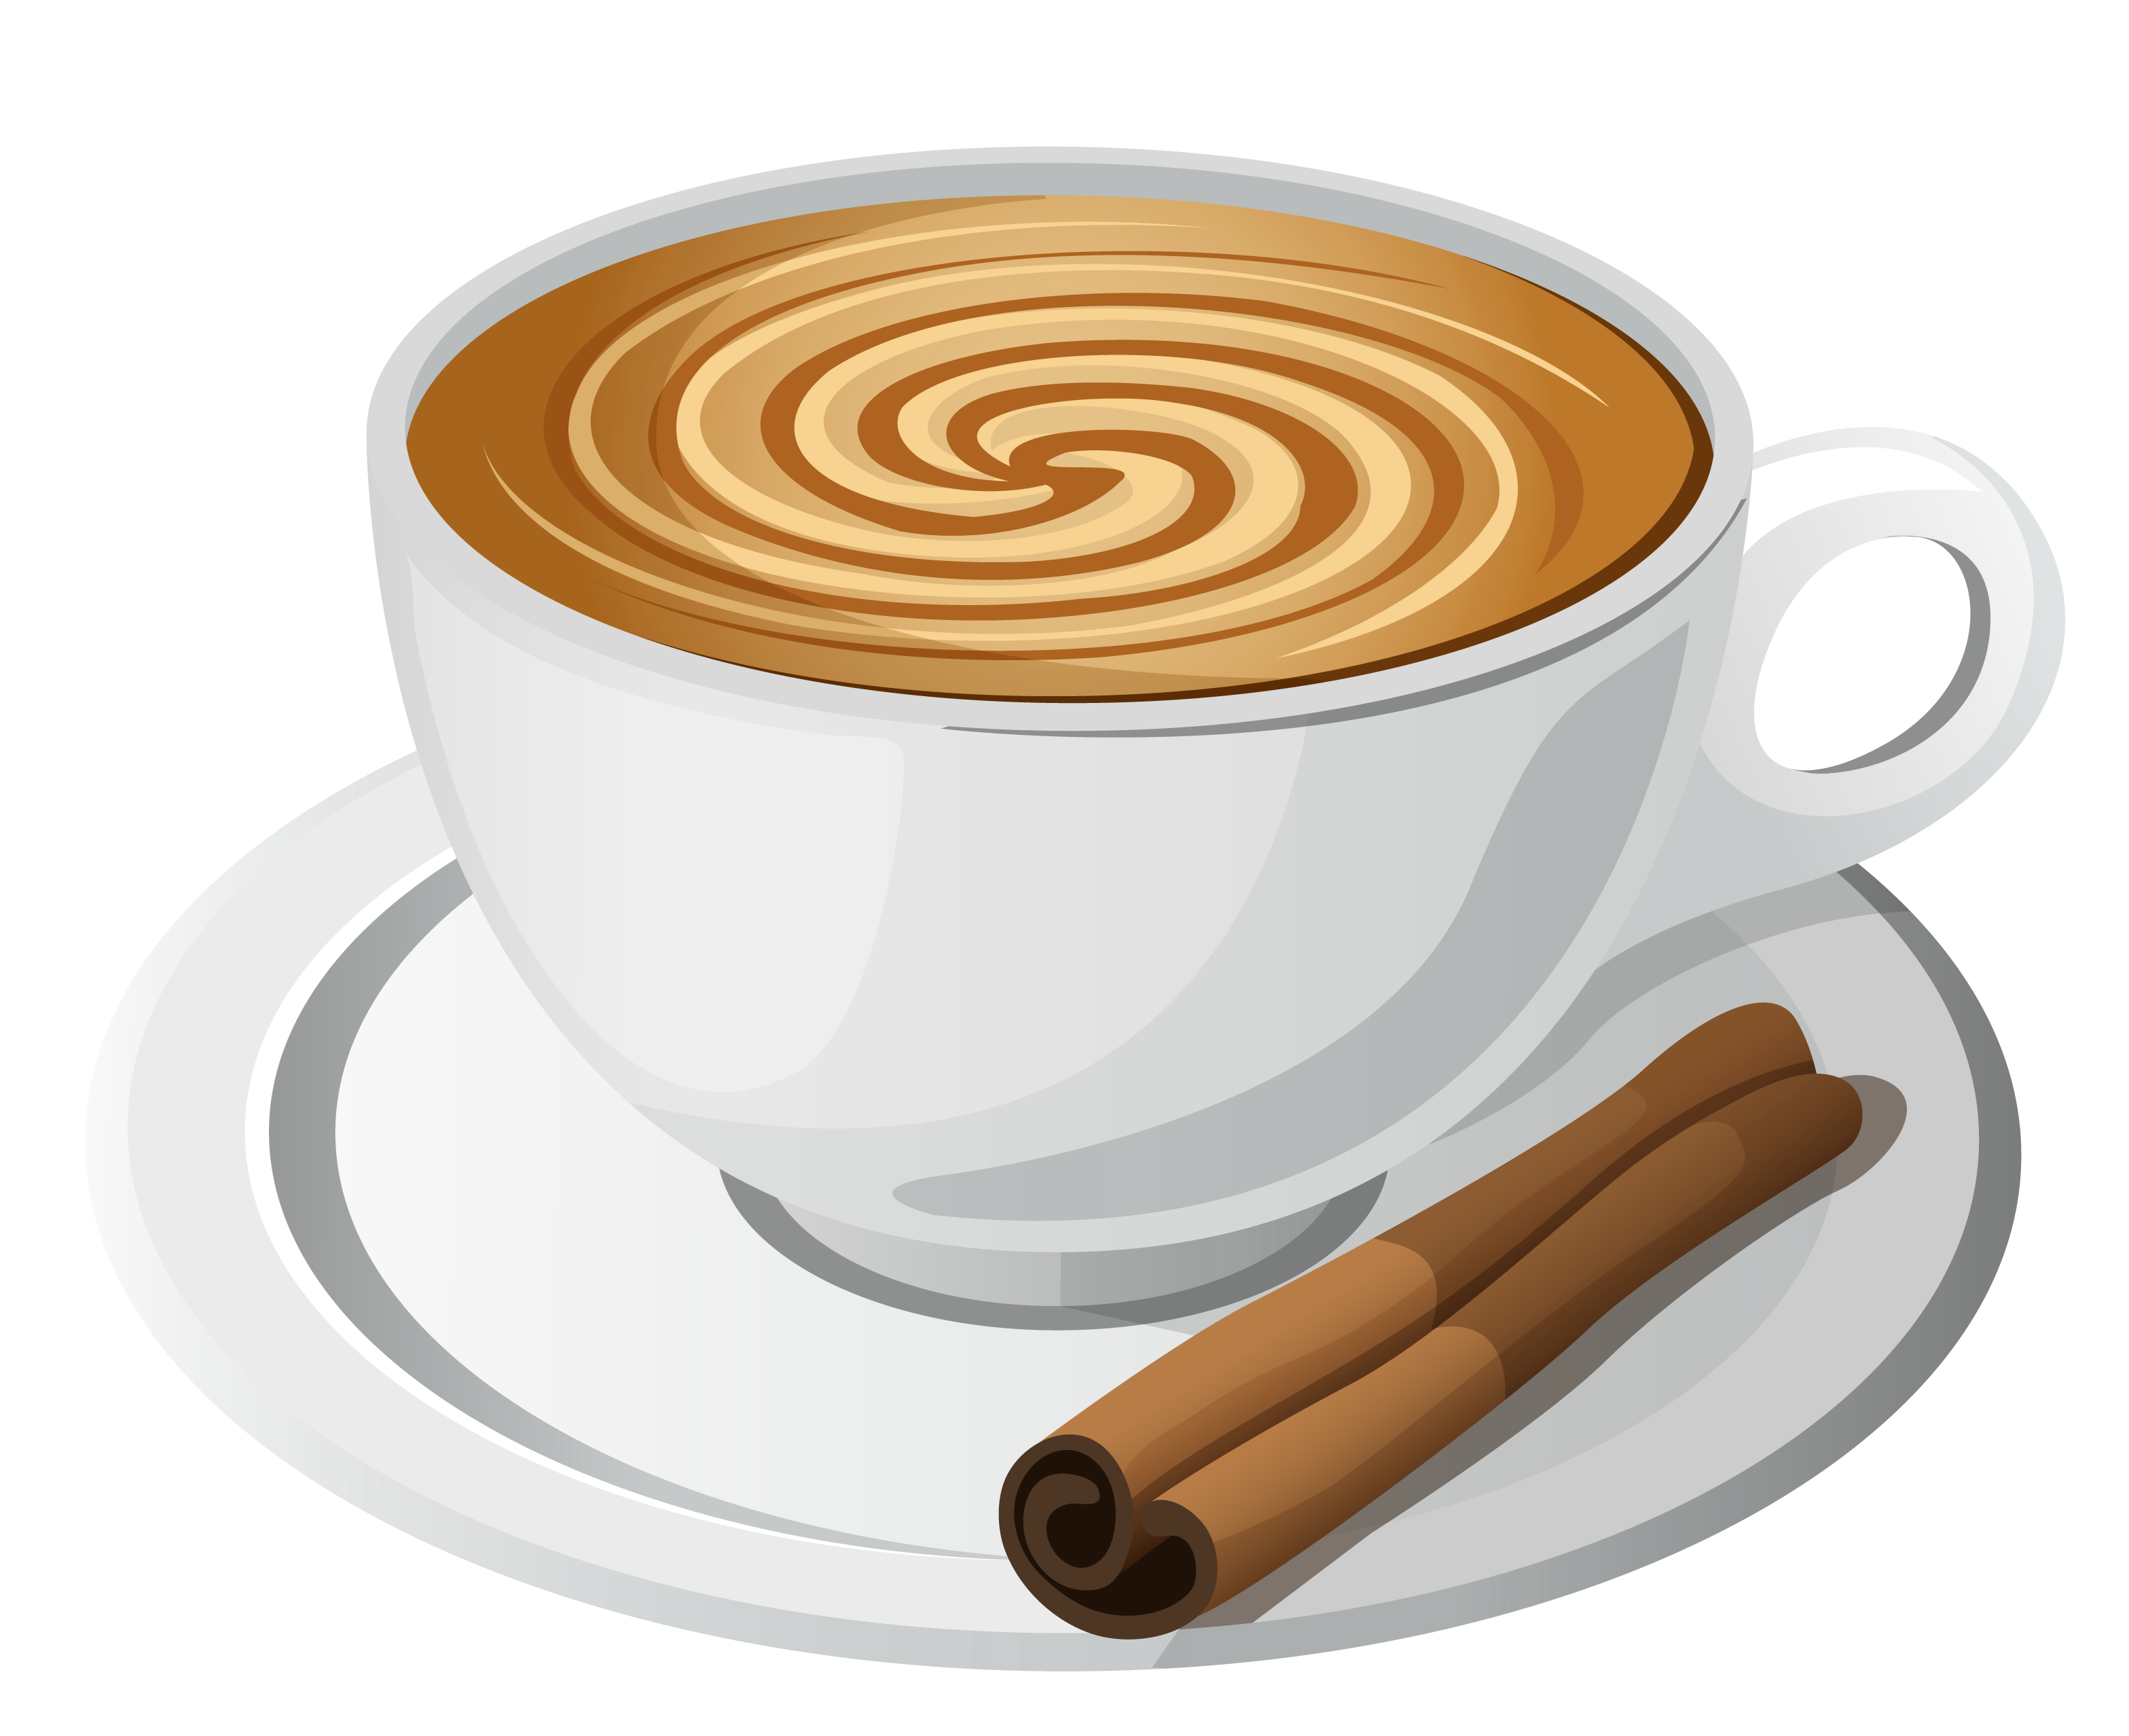 Cinnamon png image. Coffee with clipart gallery